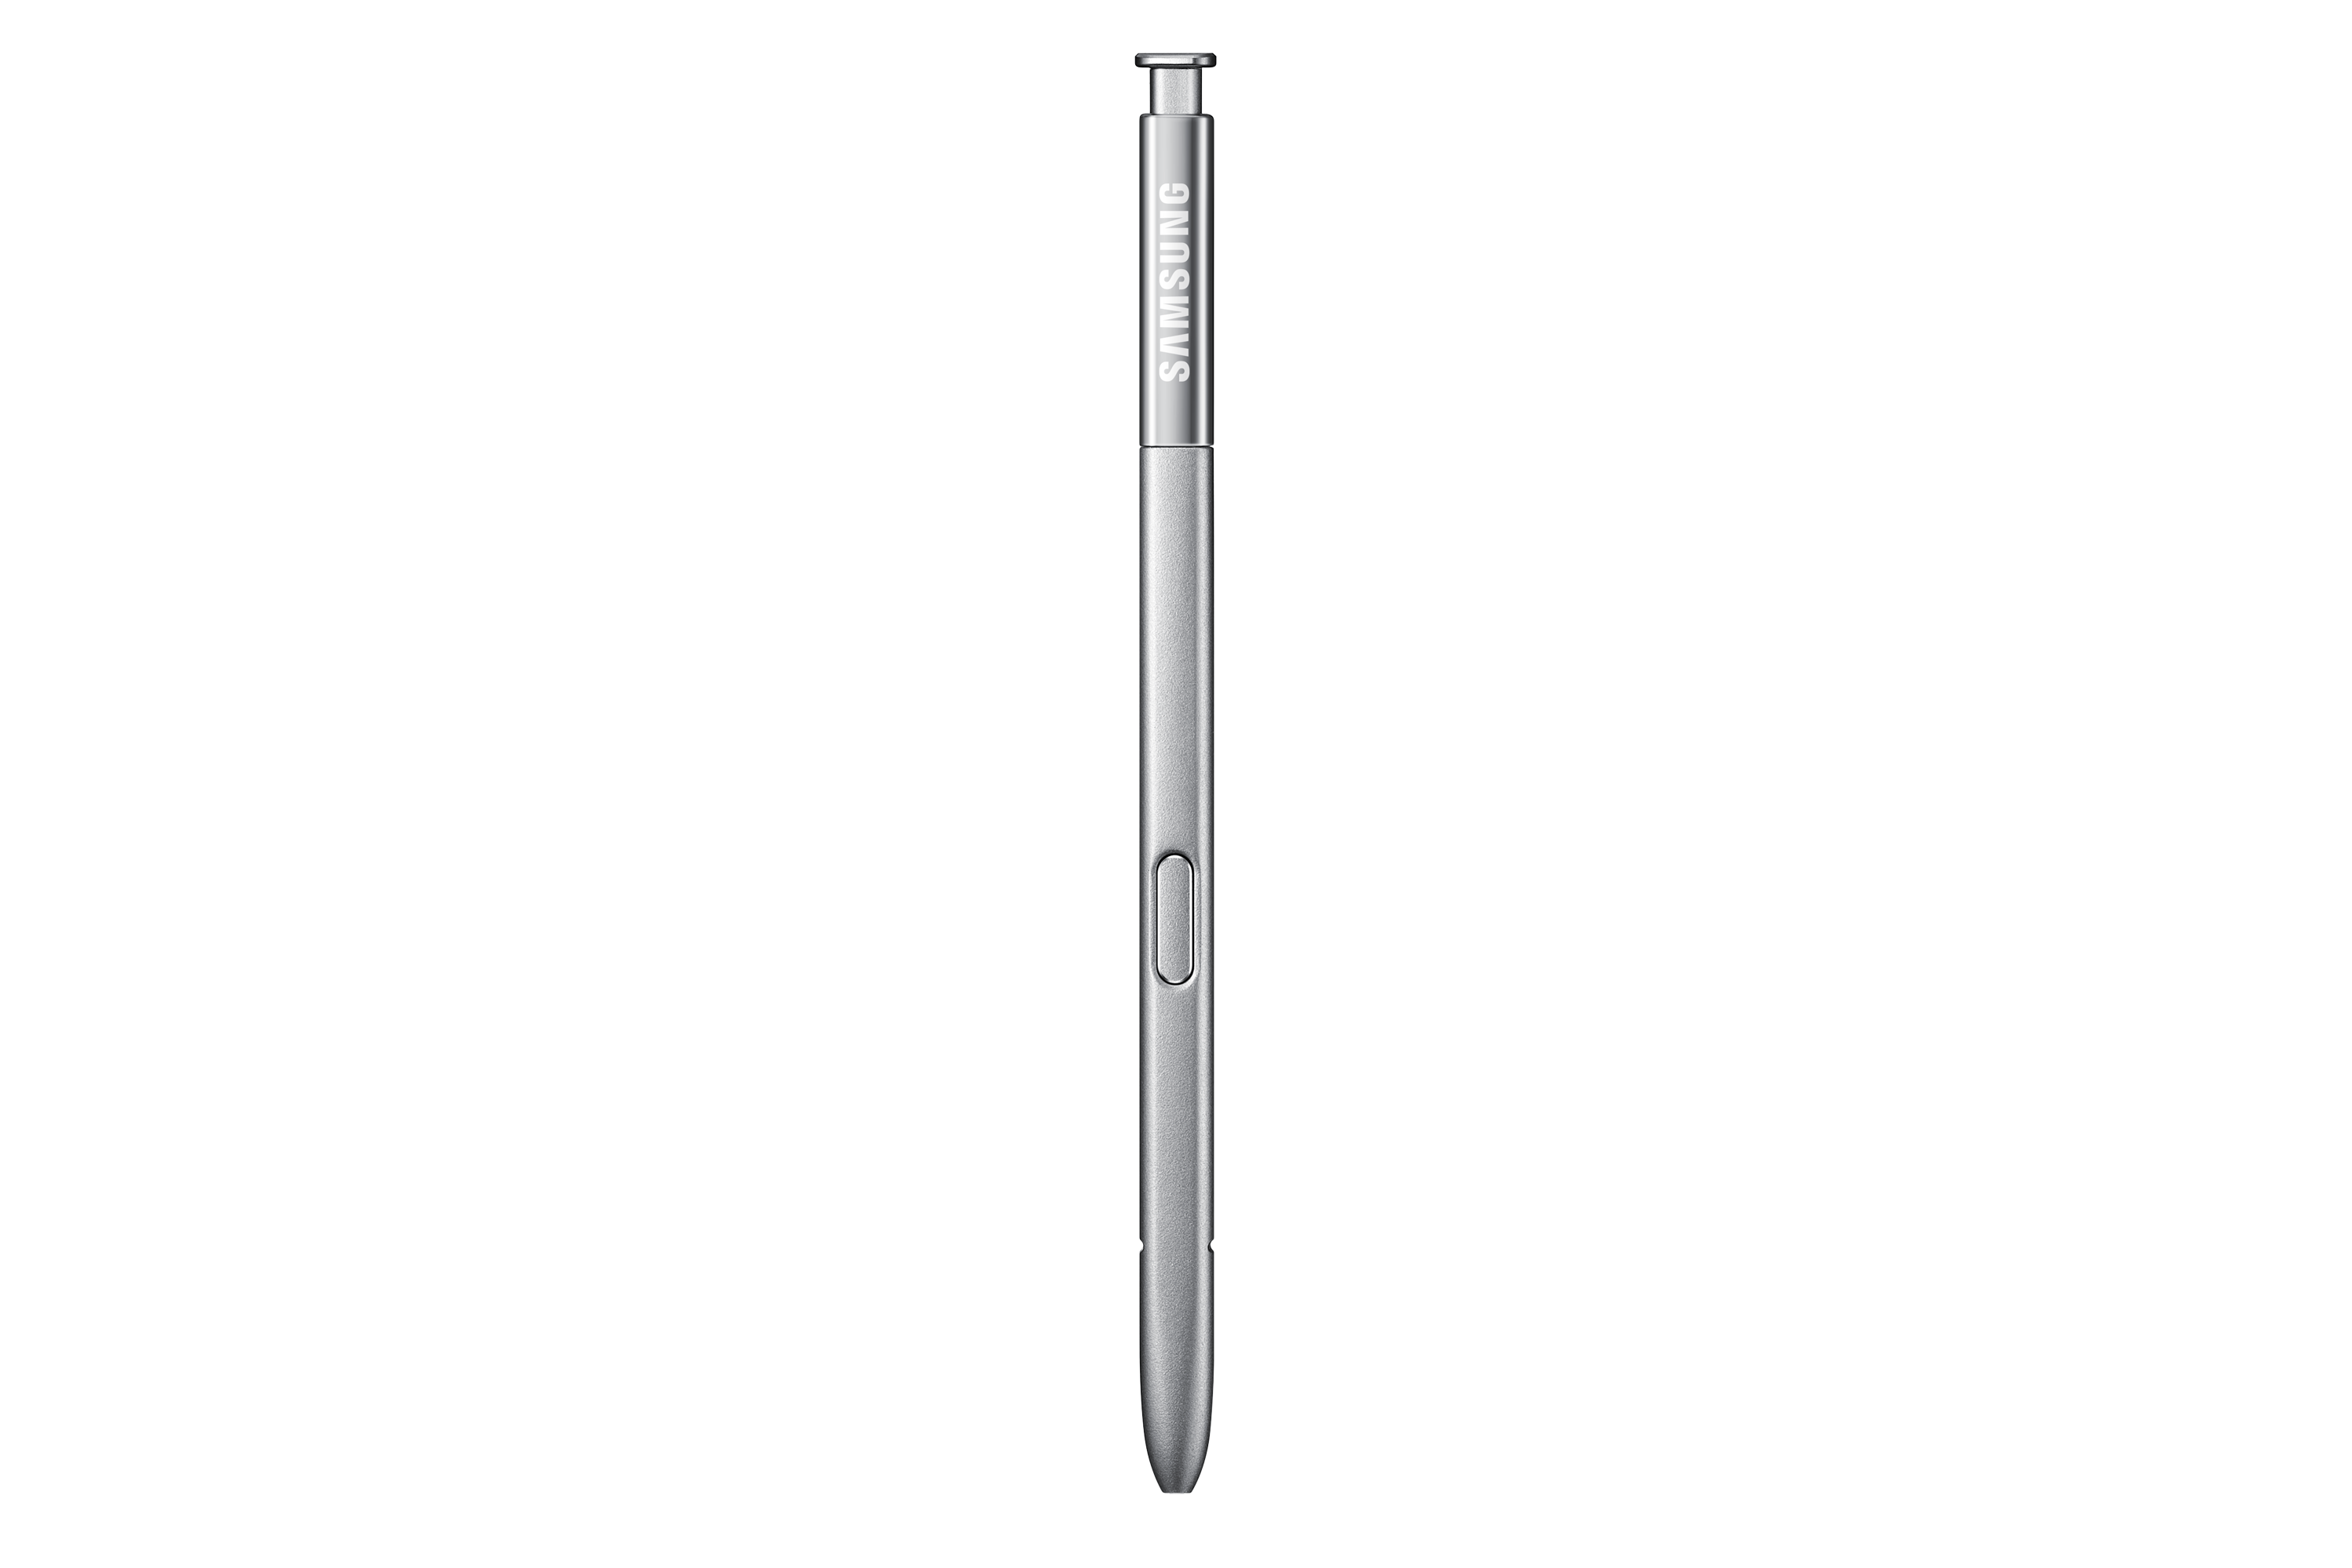 S Pen for Galaxy Note7